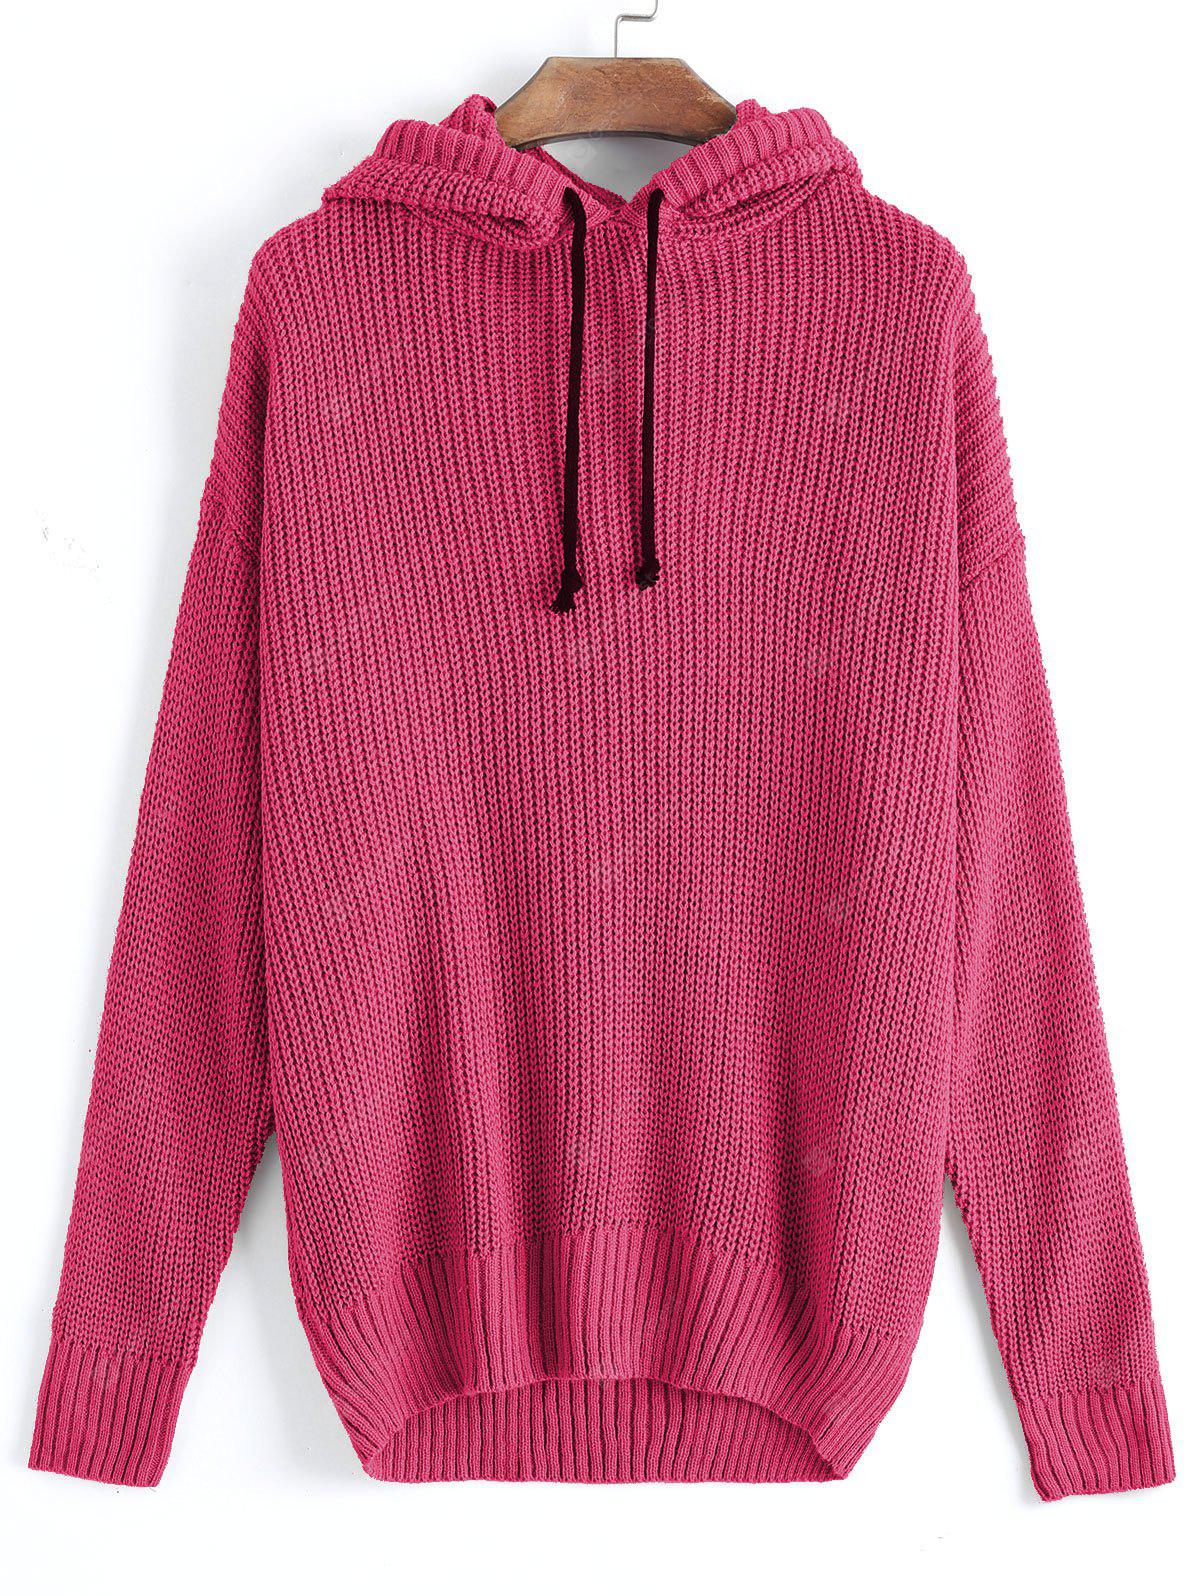 Hooded Oversized Pullover Sweater